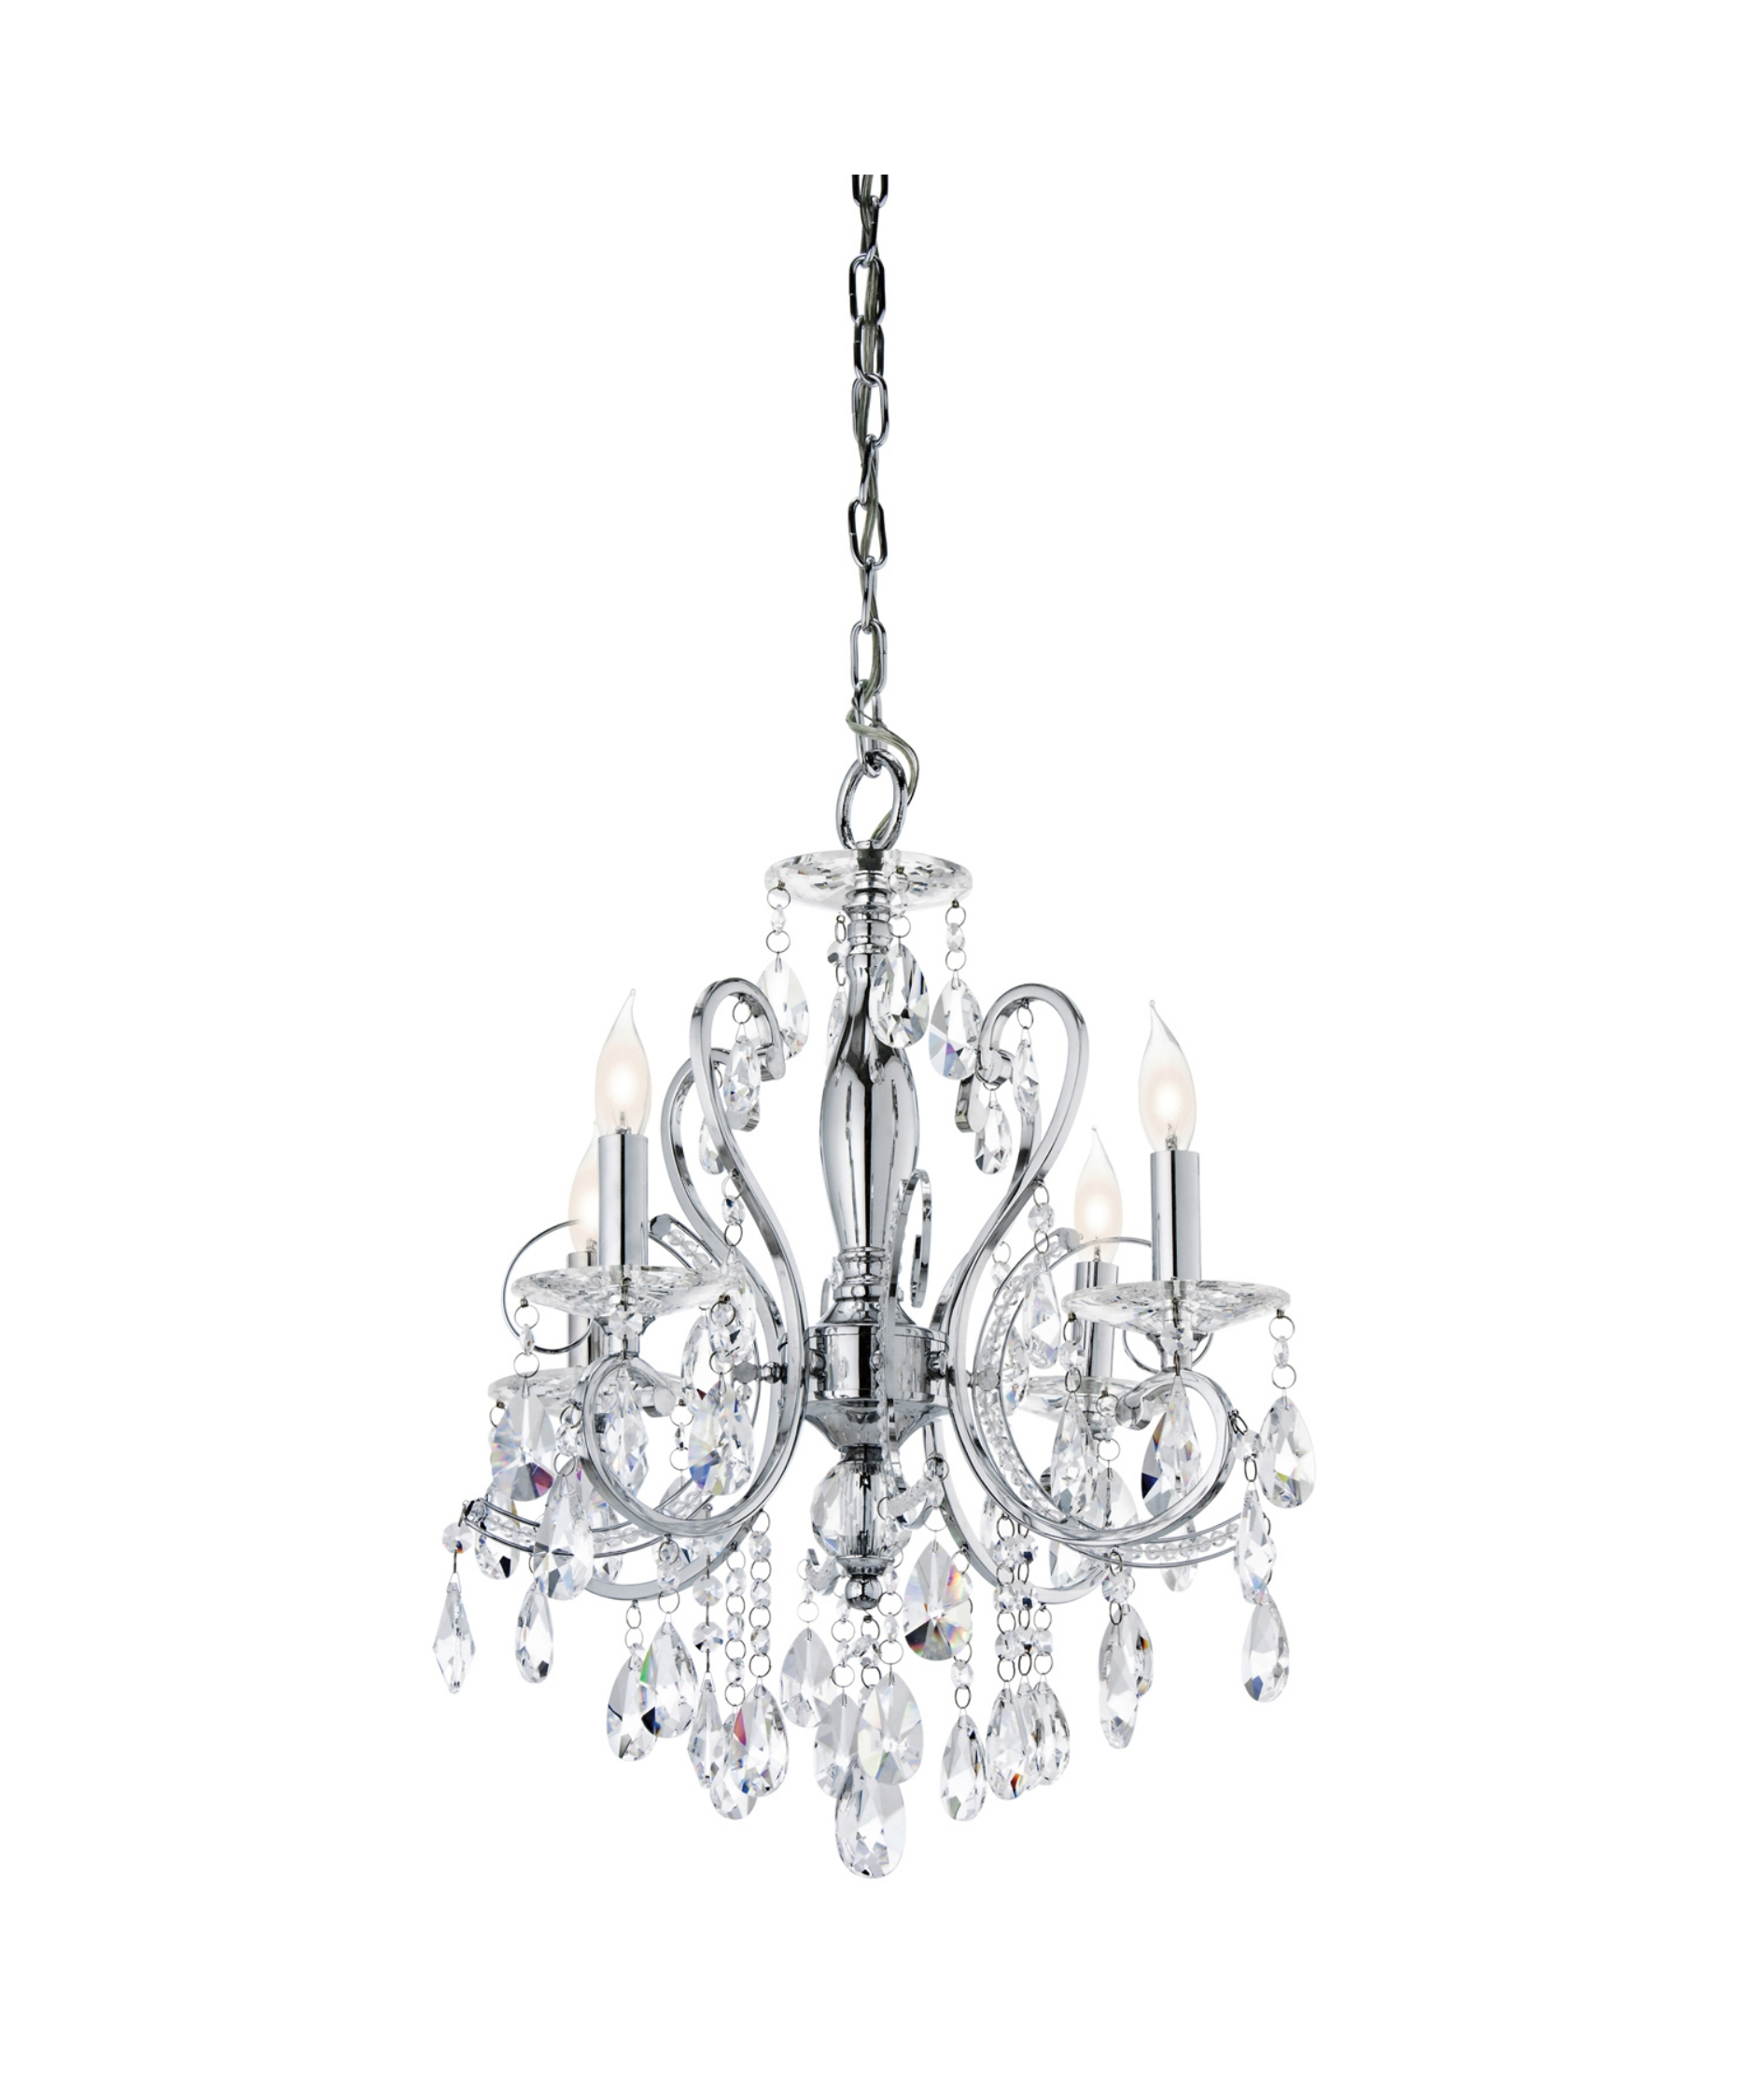 Beautiful Small Crystal Chandelier For Bathroom Contemporary For Bathroom Chandeliers Sale (View 6 of 15)